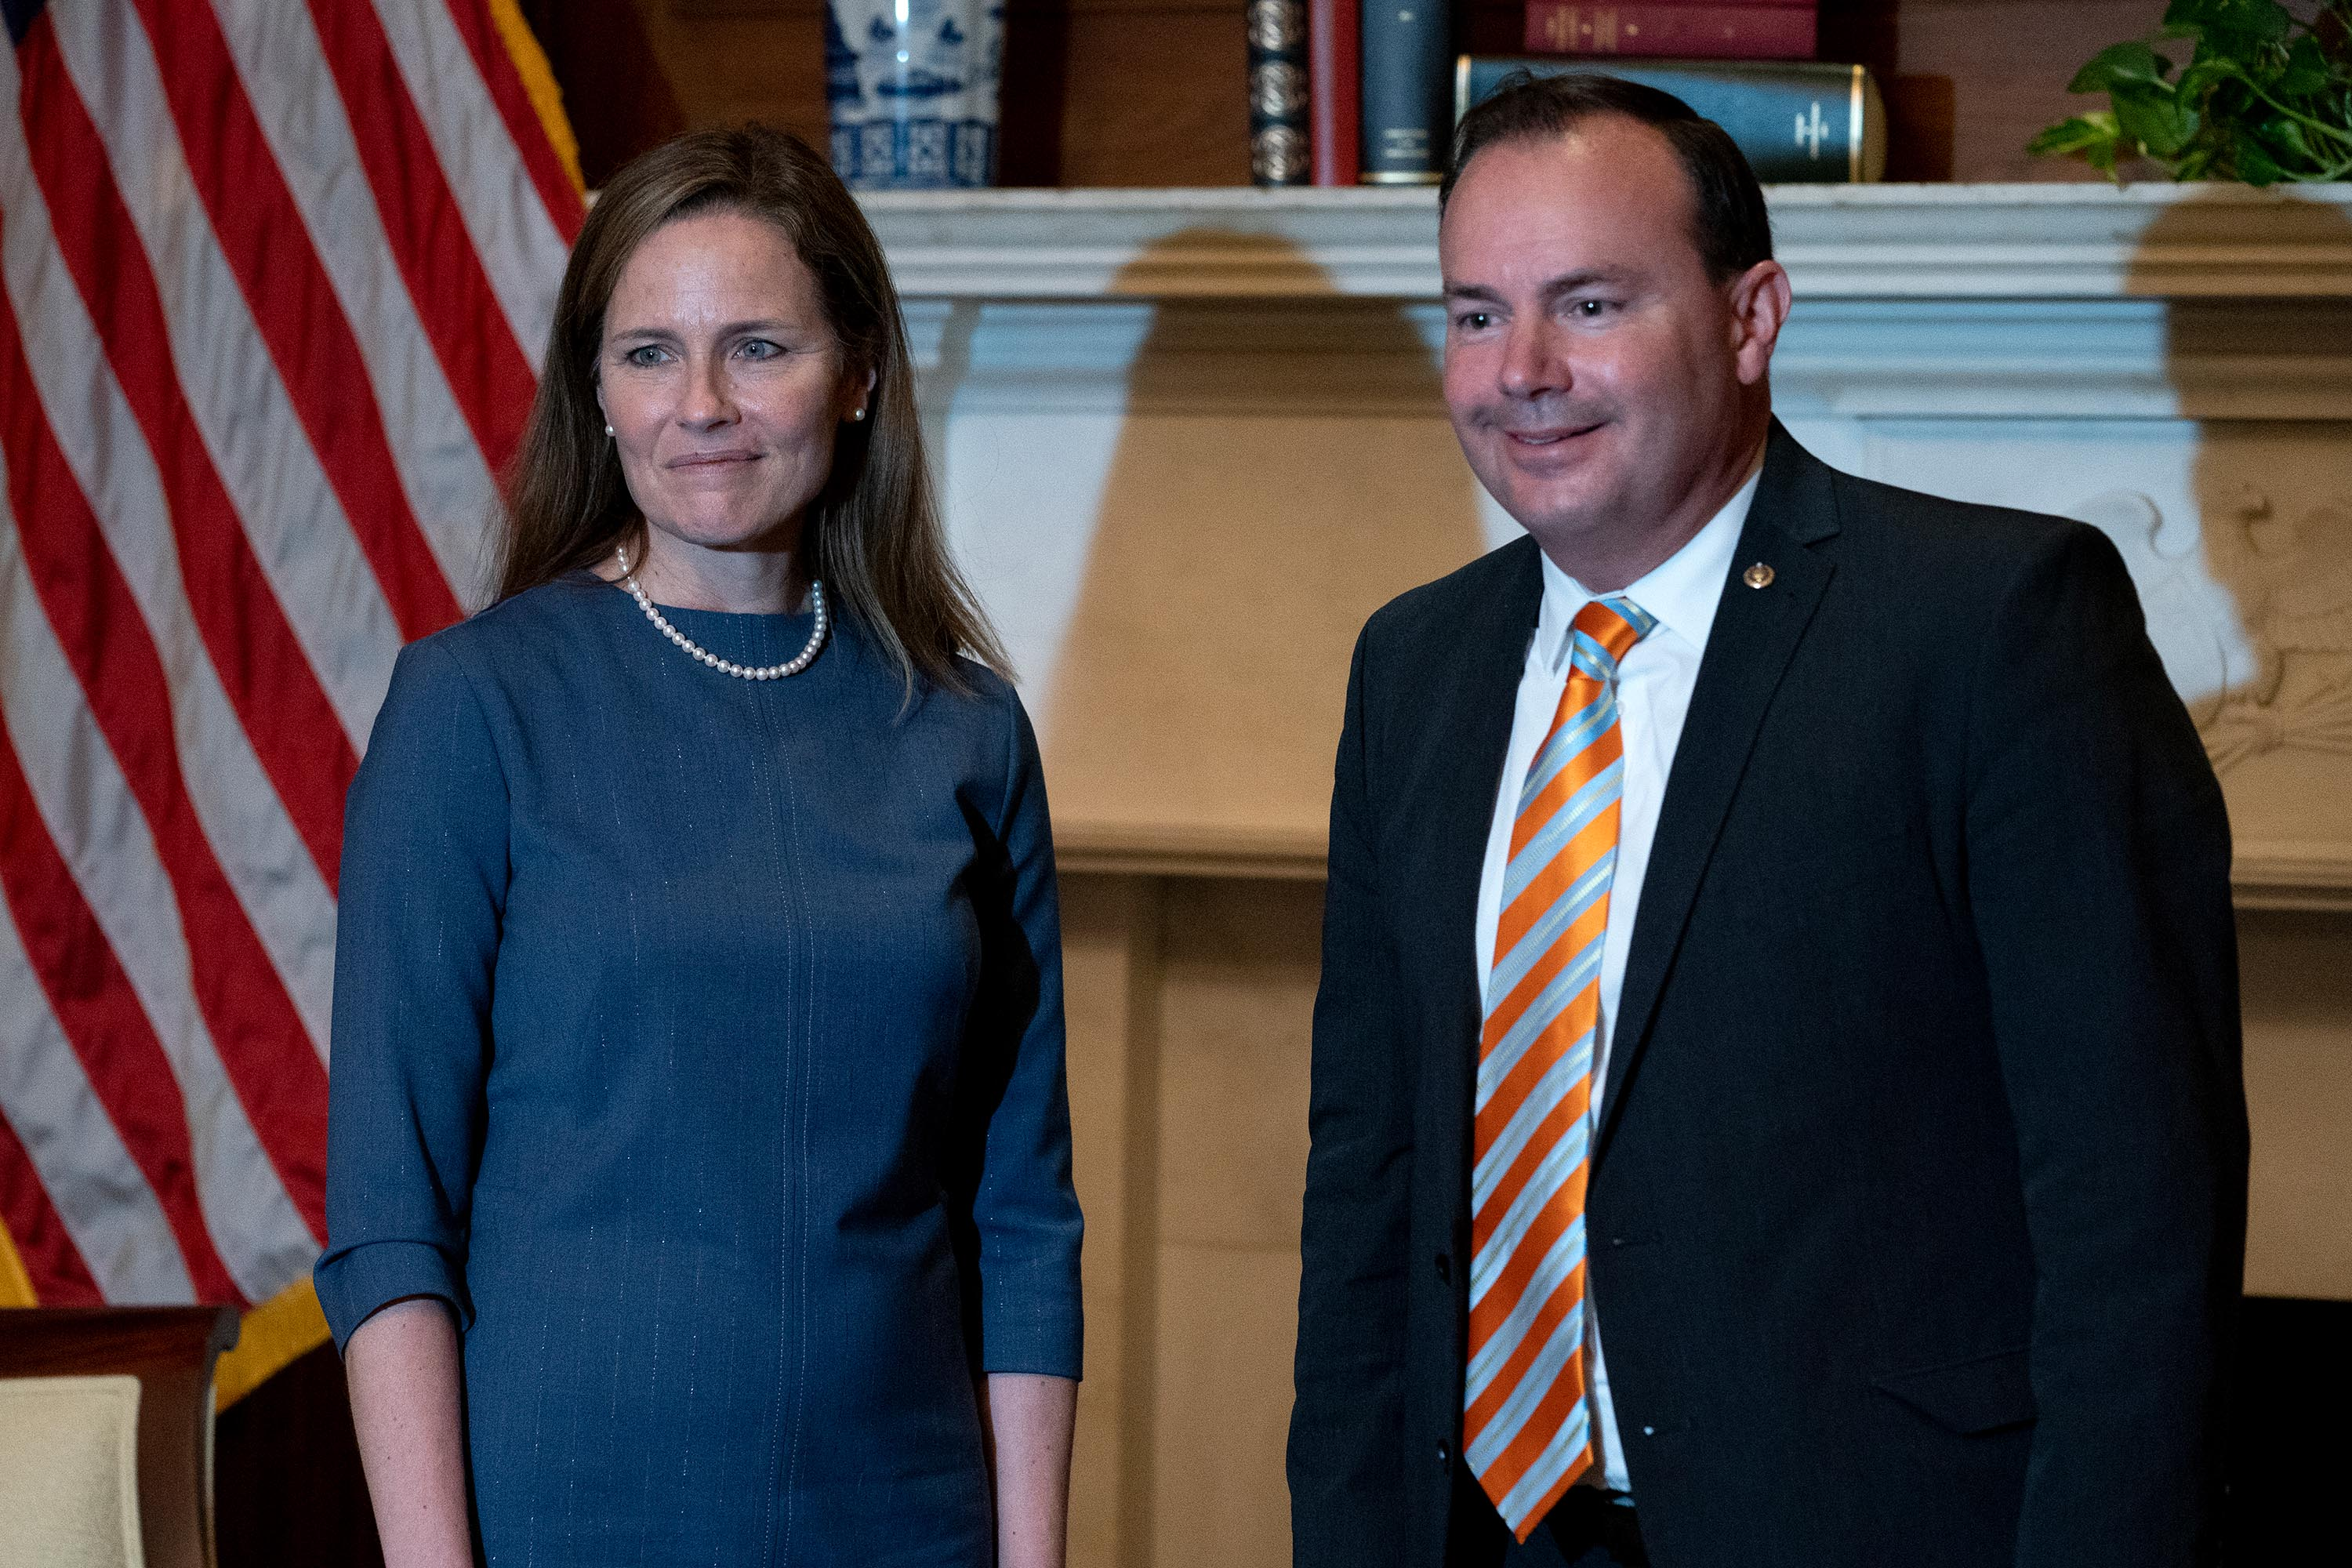 US Supreme Court nominee Amy Coney Barrett meets with Sen. Mike Lee (R-UT) as she begins a series of meetings to prepare for her confirmation hearing at the US Capitol on September 29.